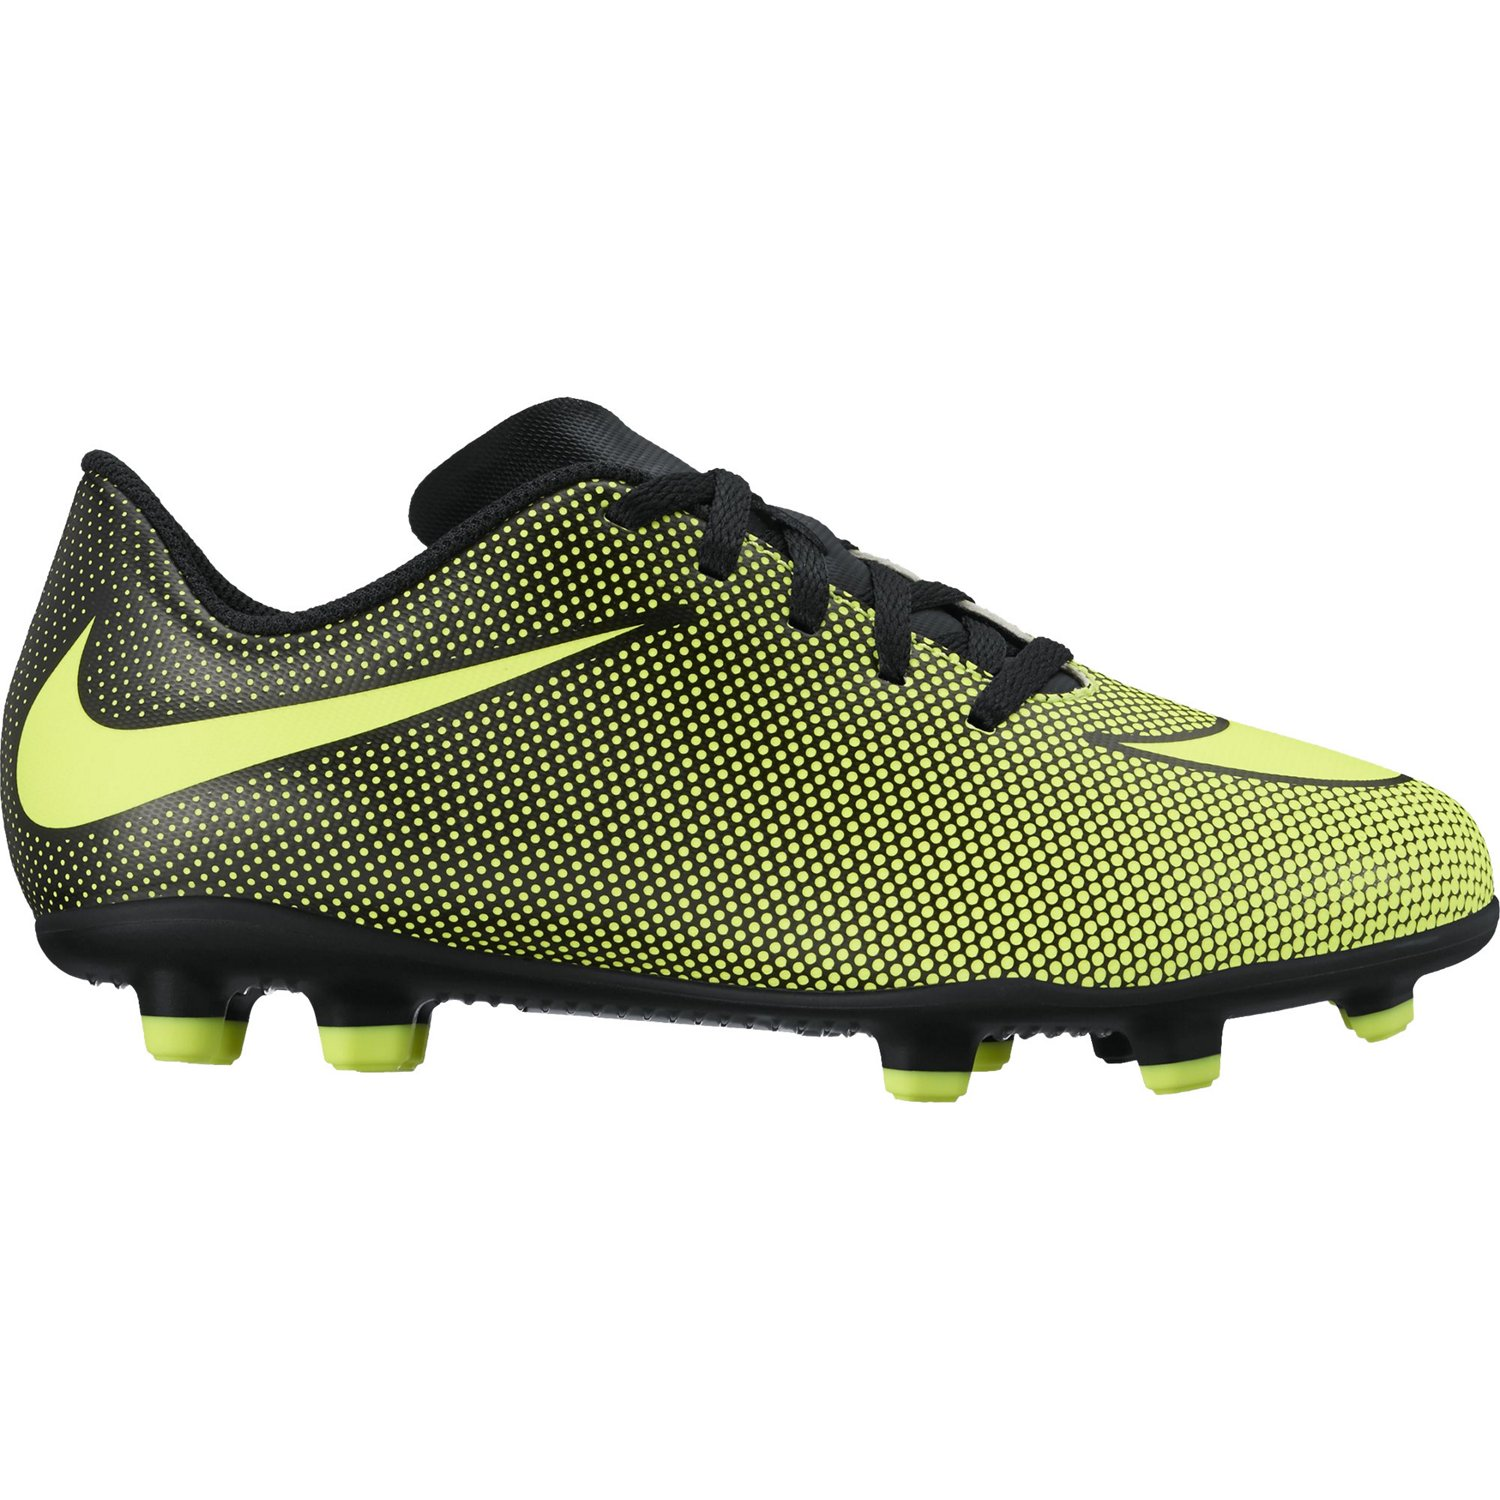 Display product reviews for Nike Kids' Bravata II Firm Ground Soccer Cleats